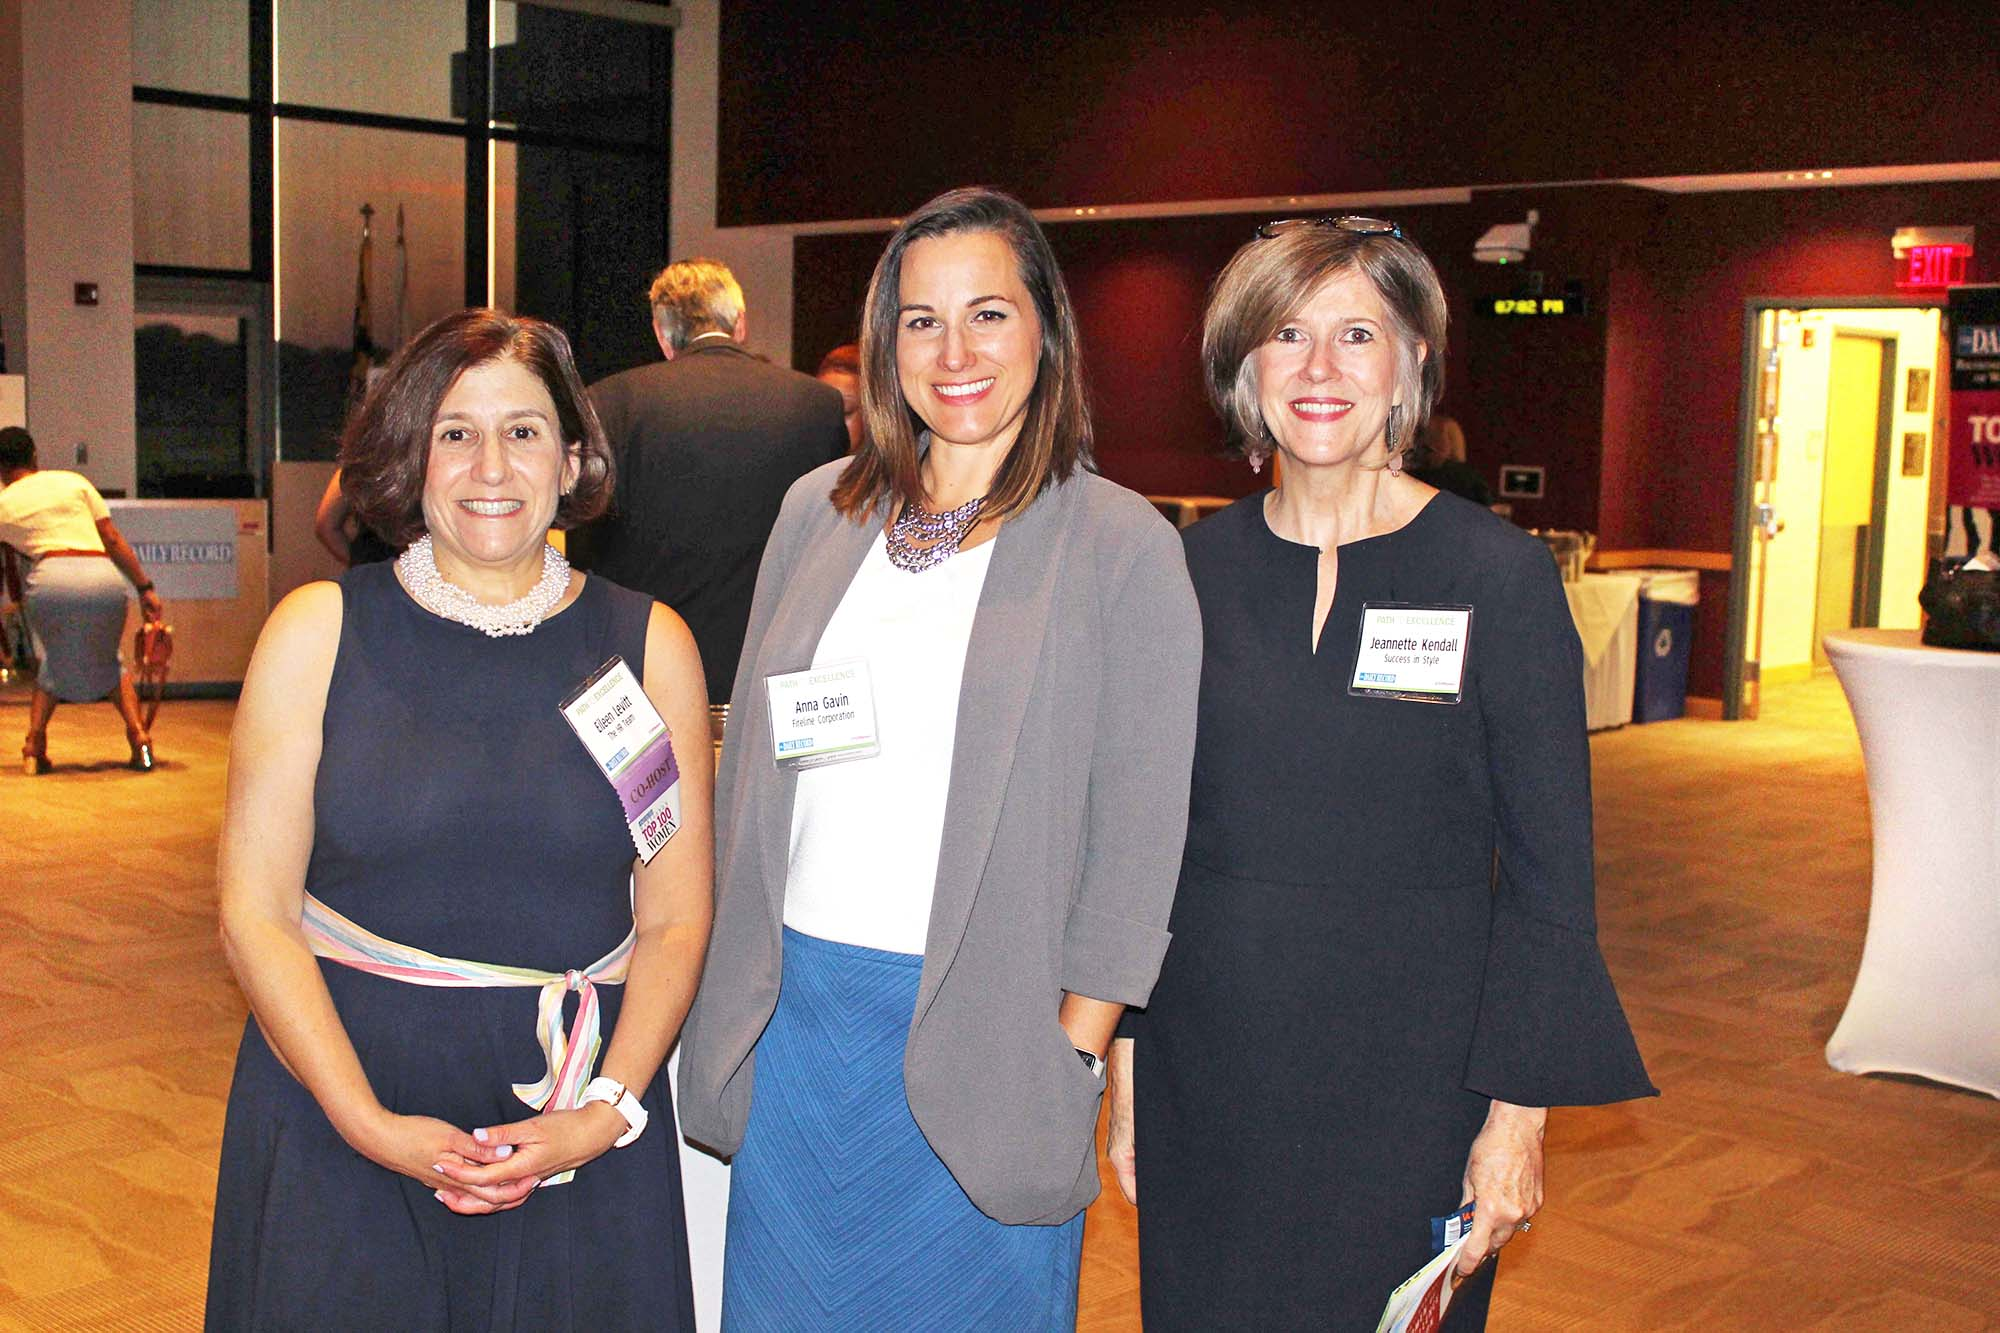 From left, event co-host and Top 100 Women winner Eileen Levitt, The HR Team; Anna Gavin, Fireline Corporation; and Jeannette Kendall, Success in Style, visit during the networking event. (Photo by Patrick Brannan)